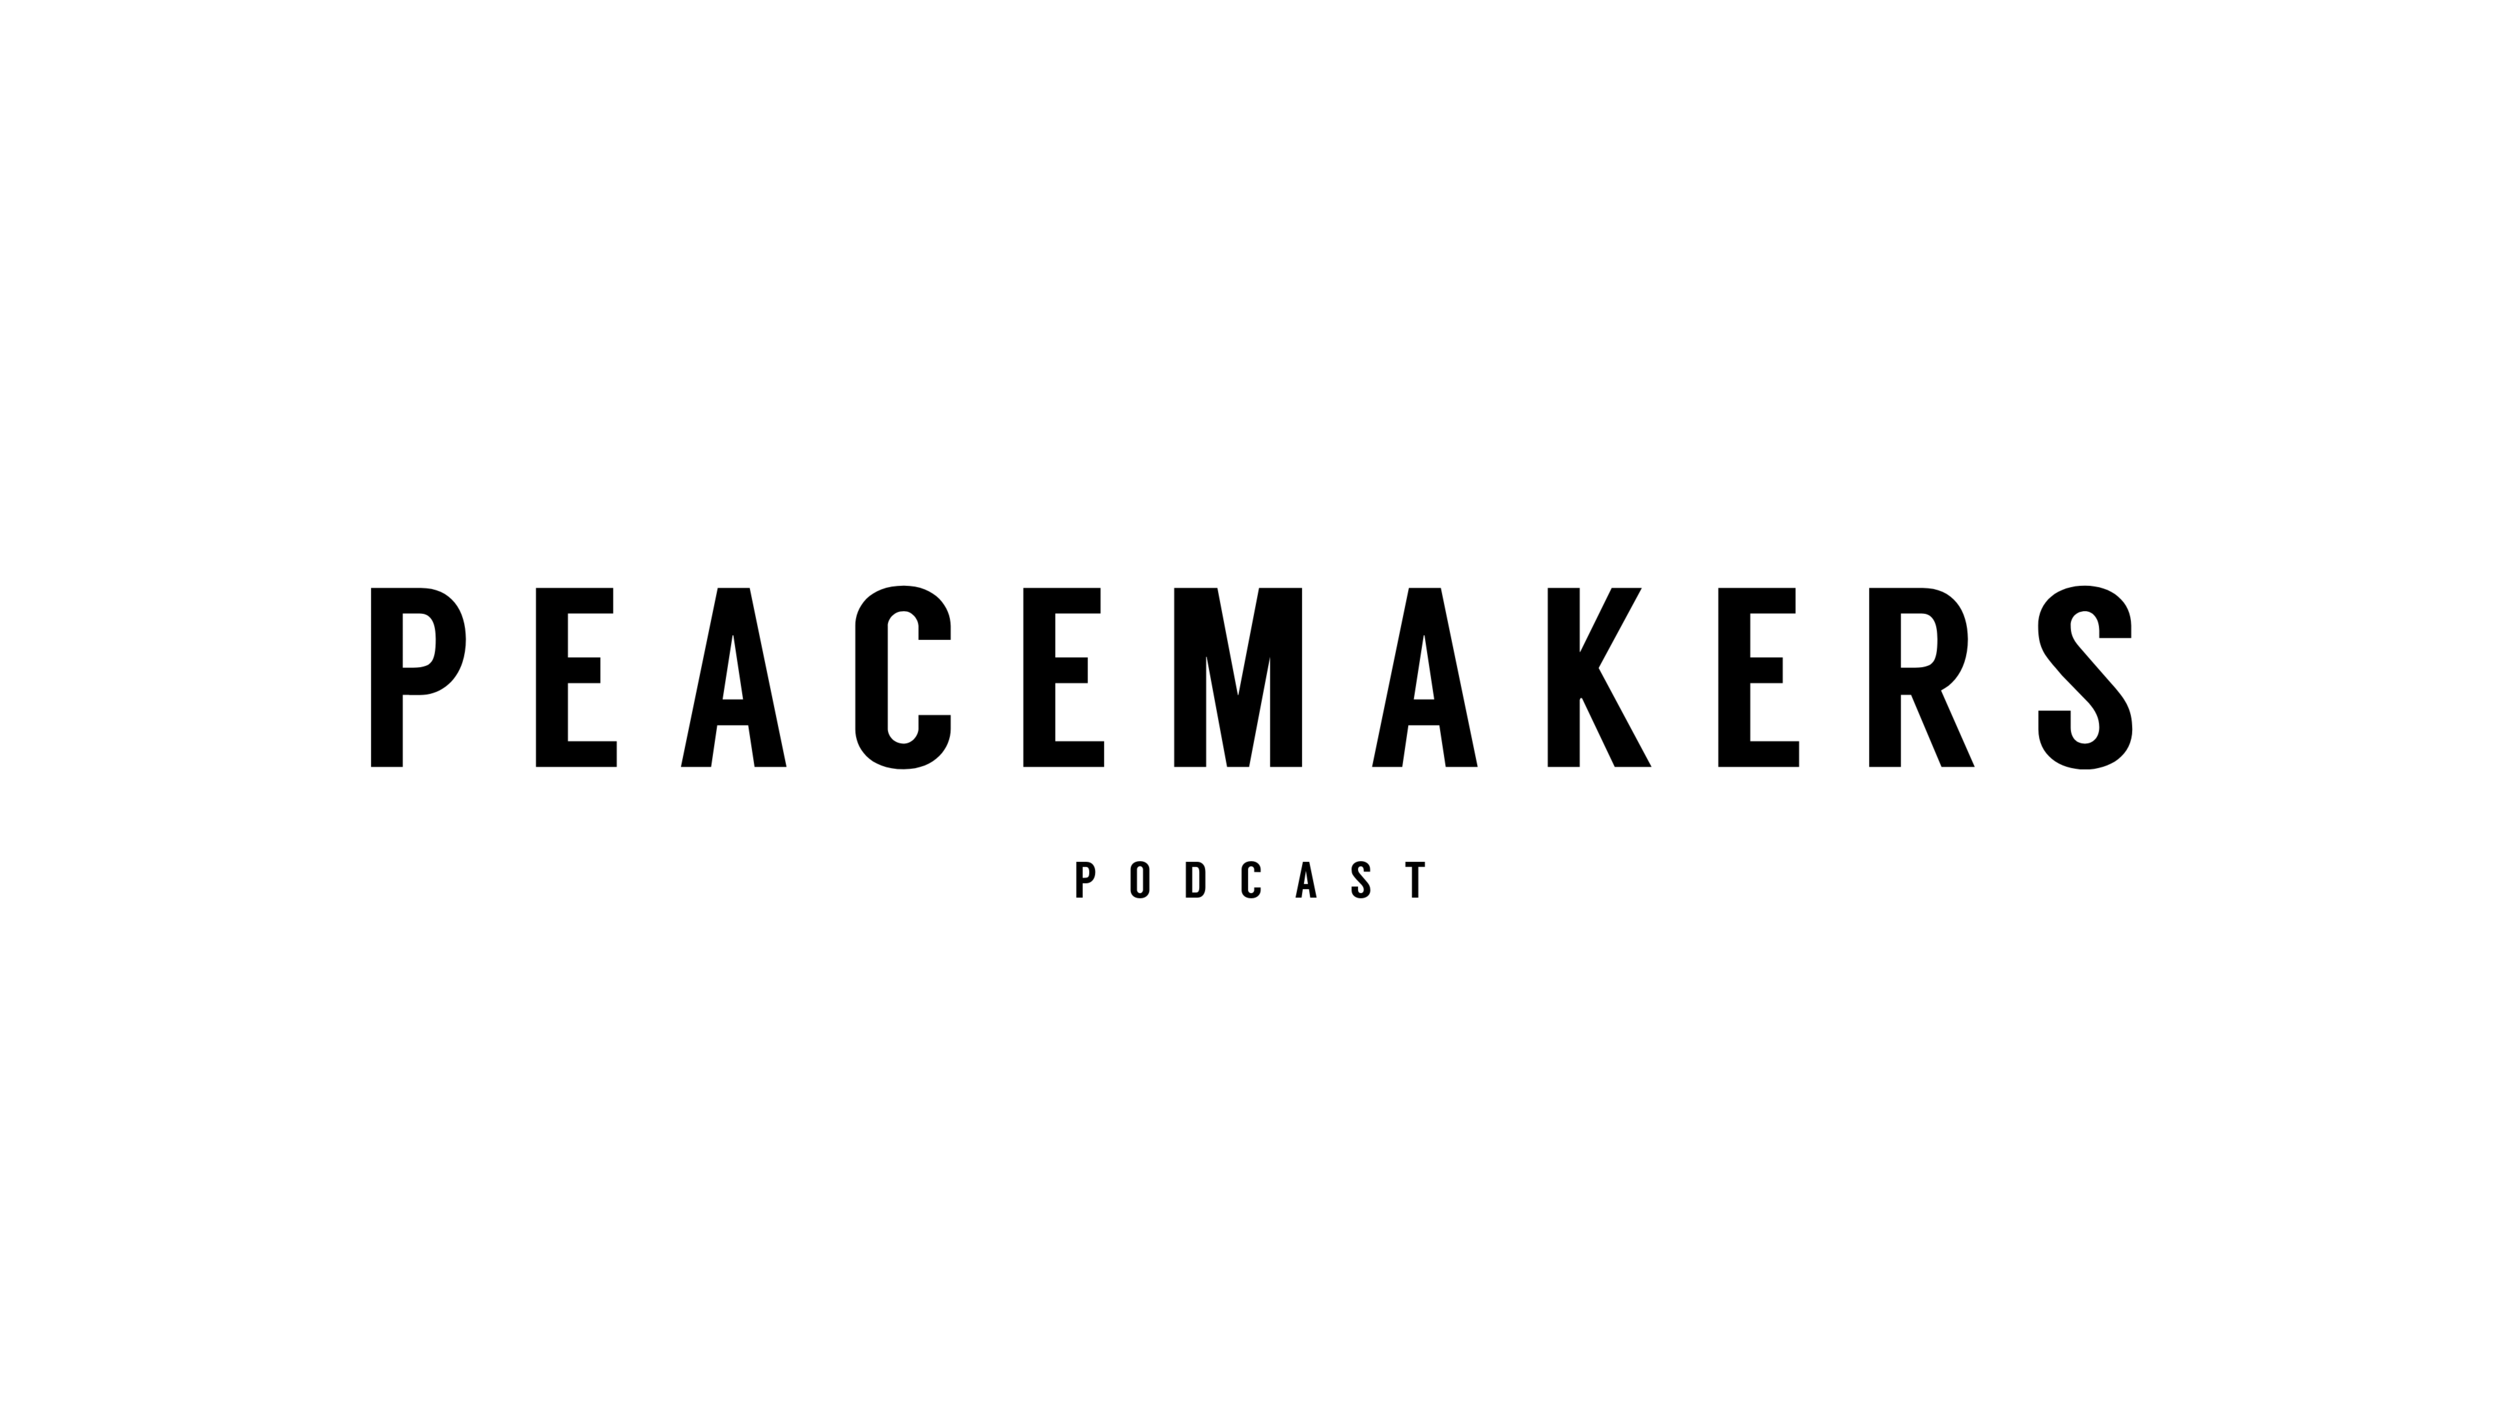 PEACEMAKERS LOGO.png